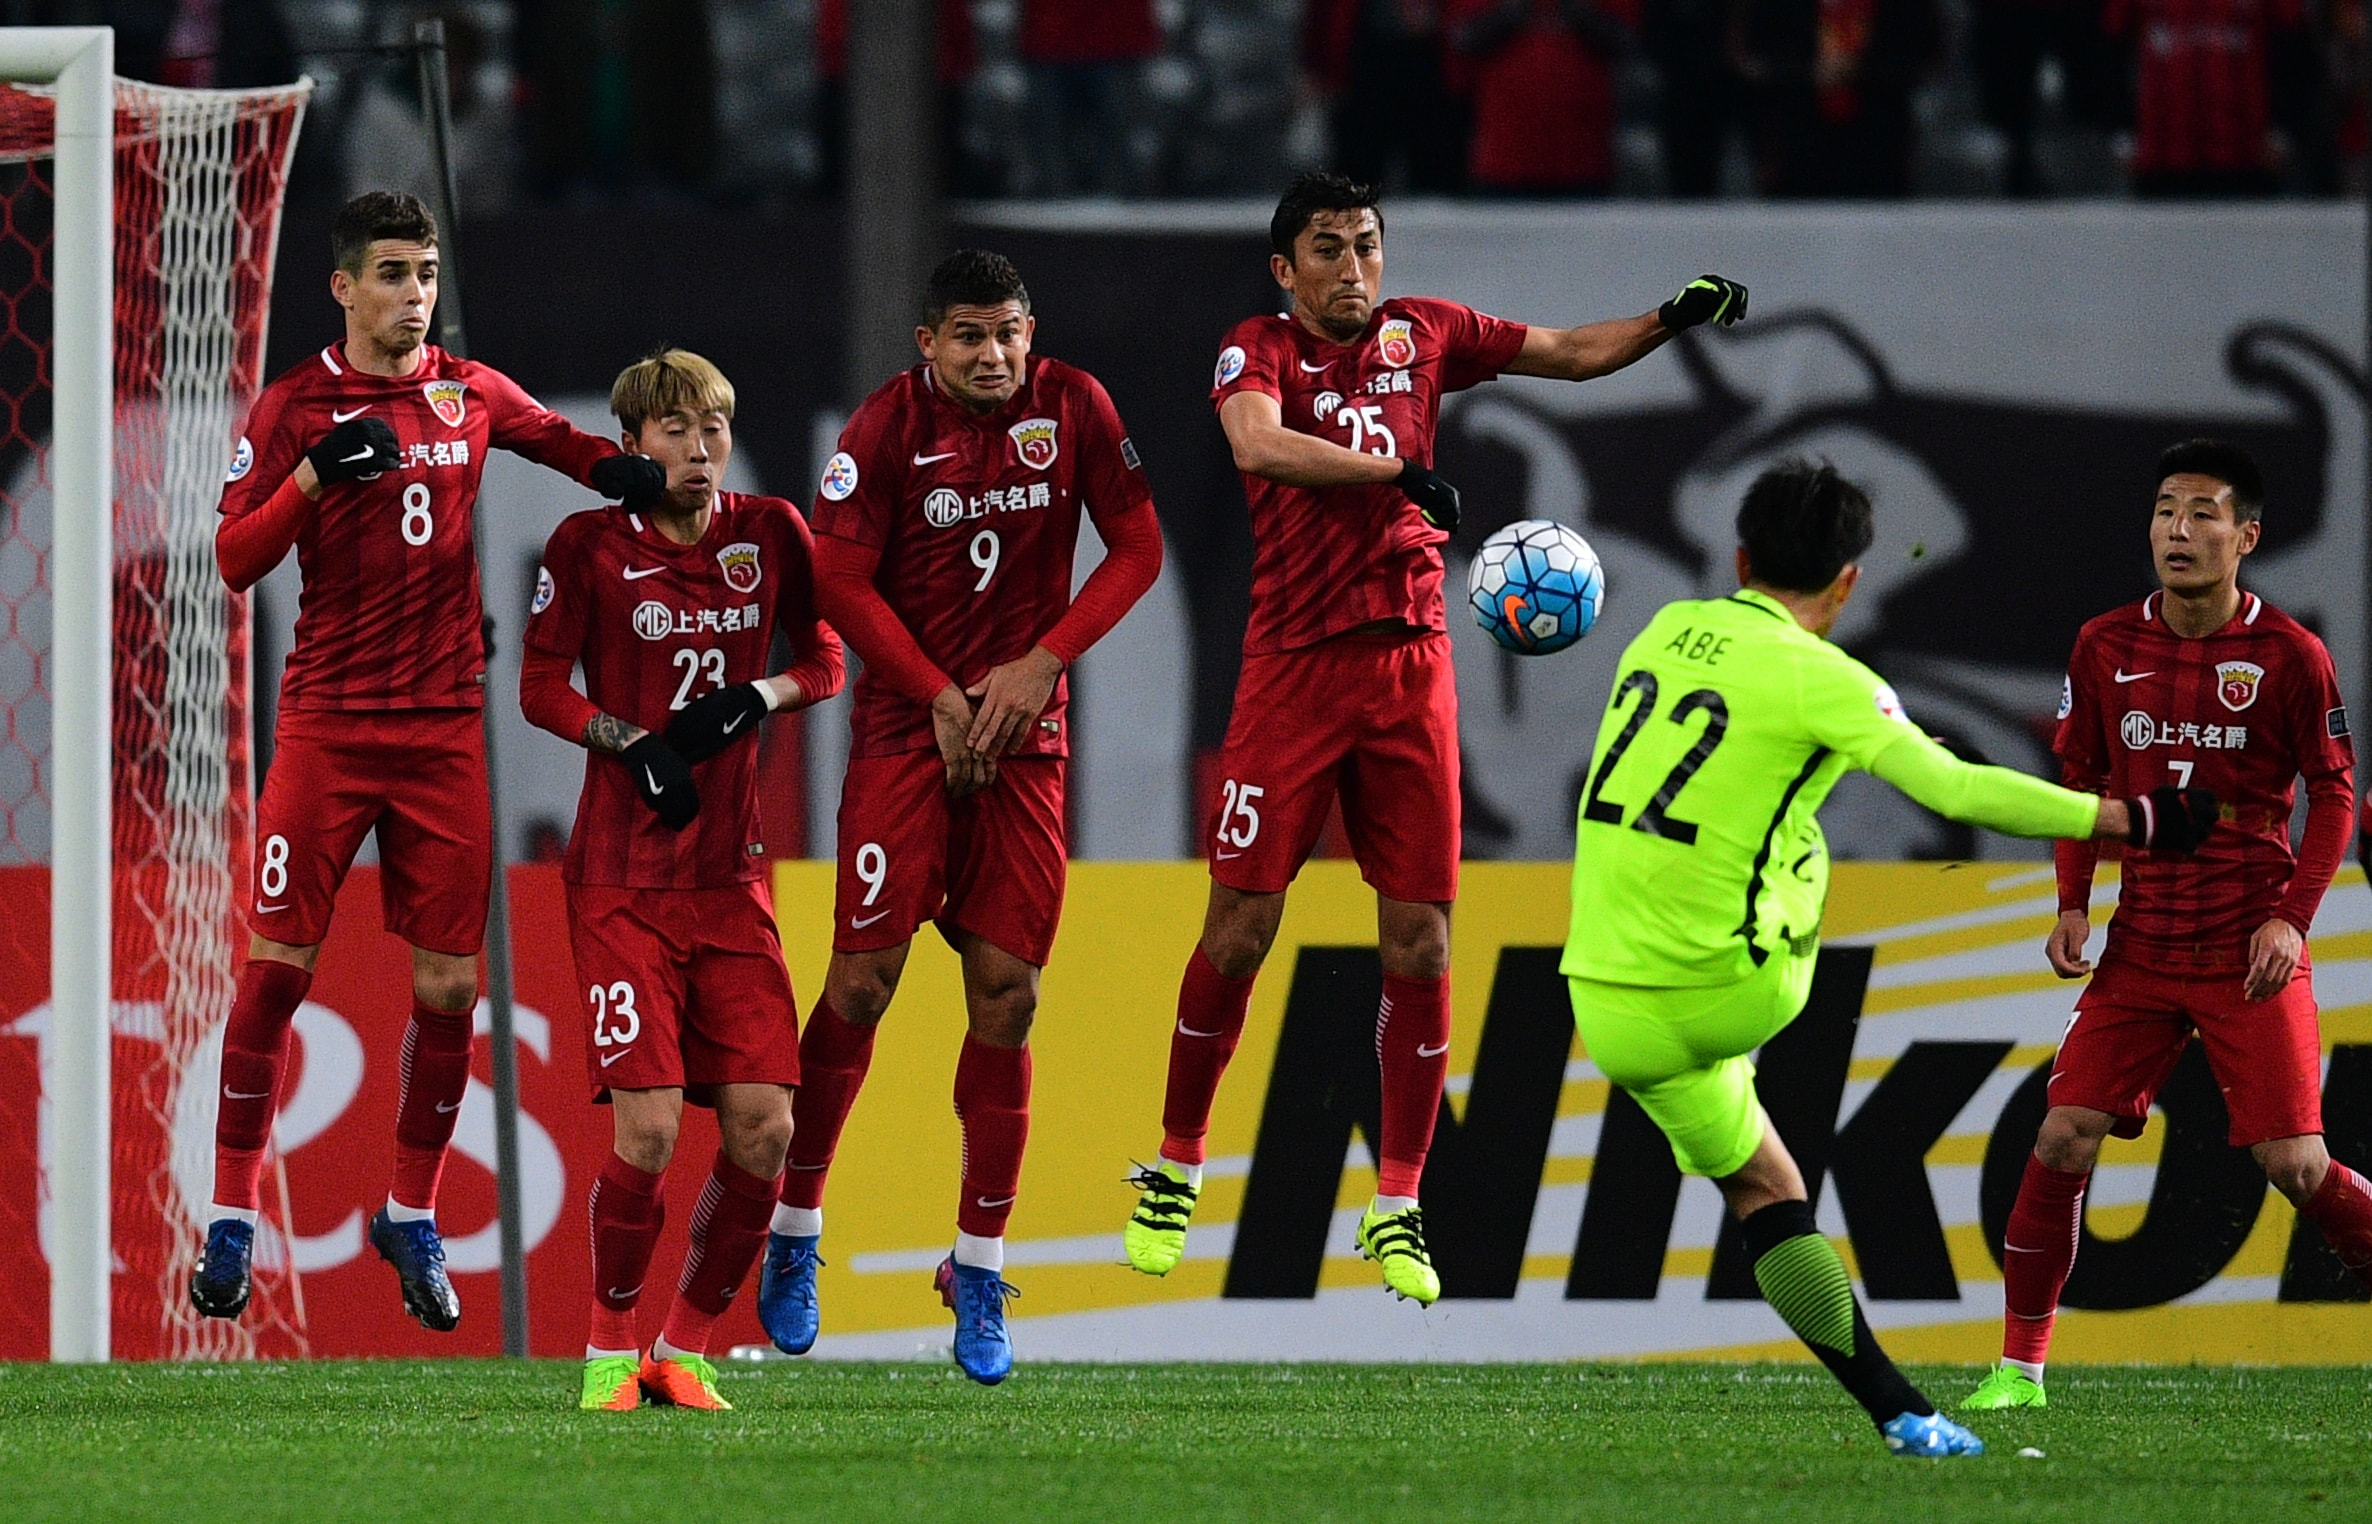 Shanghai SIPG – Ulsan Hyundai Betting prediction